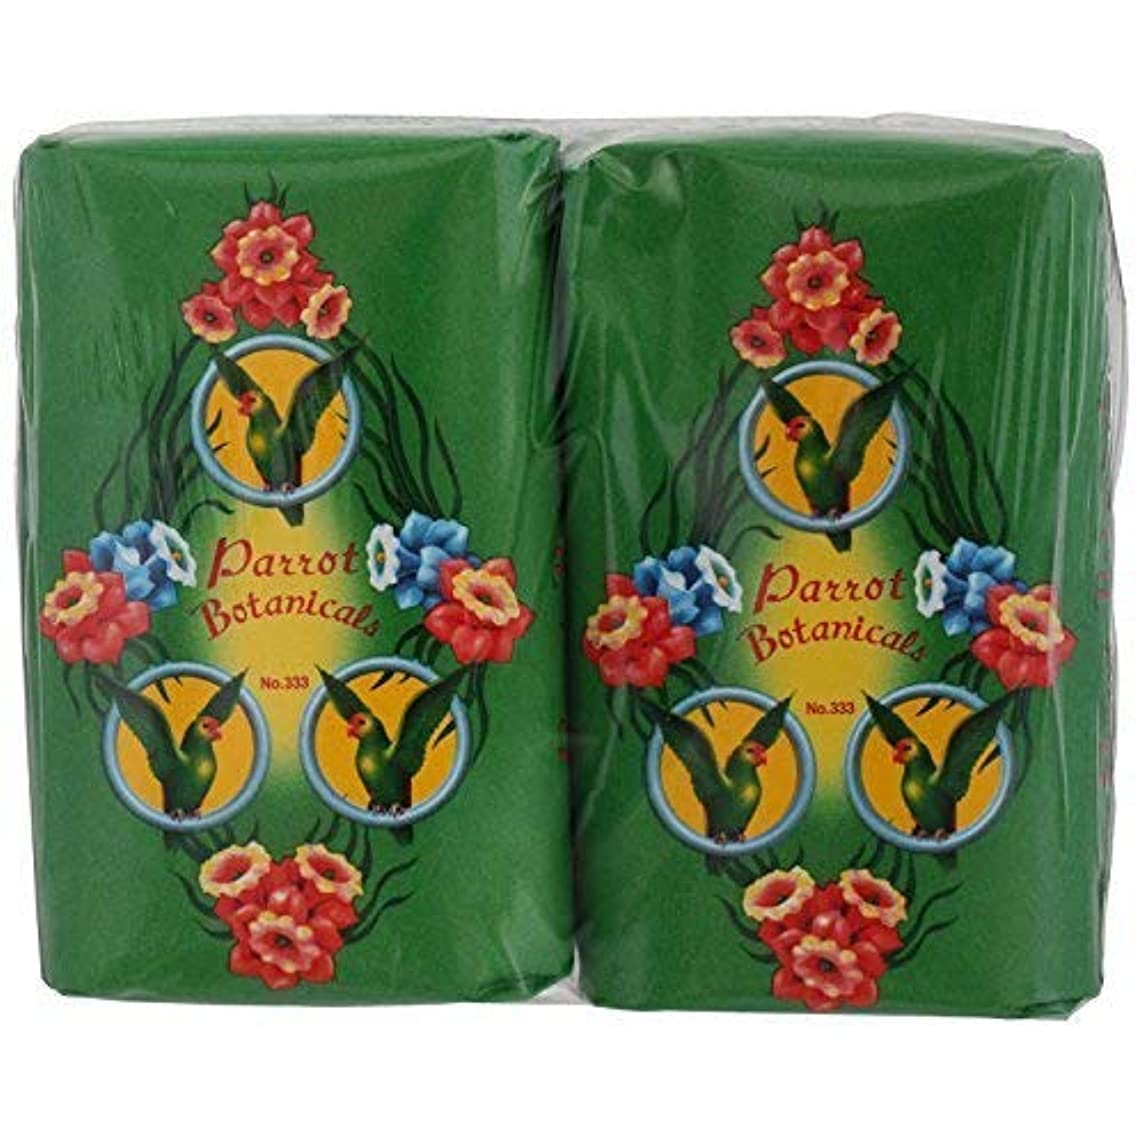 に渡って病弱起きろRose Thai Smile Shop Parrot Botanicals Soap Green Long Last Fragrance 105 G (Pack of 4) Free Shipping